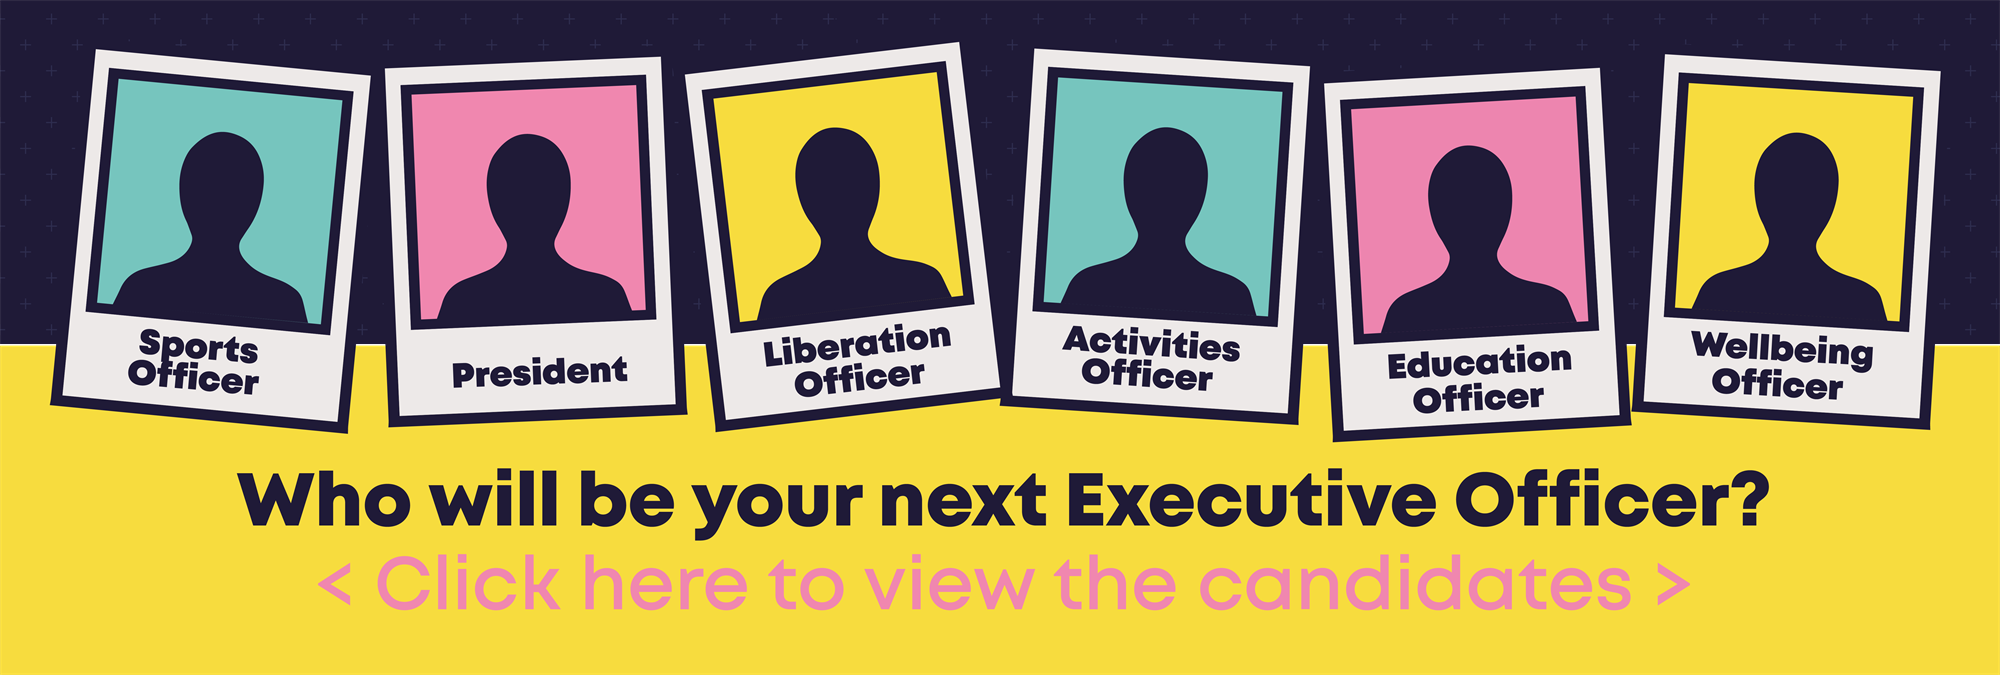 Who will be your next Executive Officer? Click here to view the candidates.